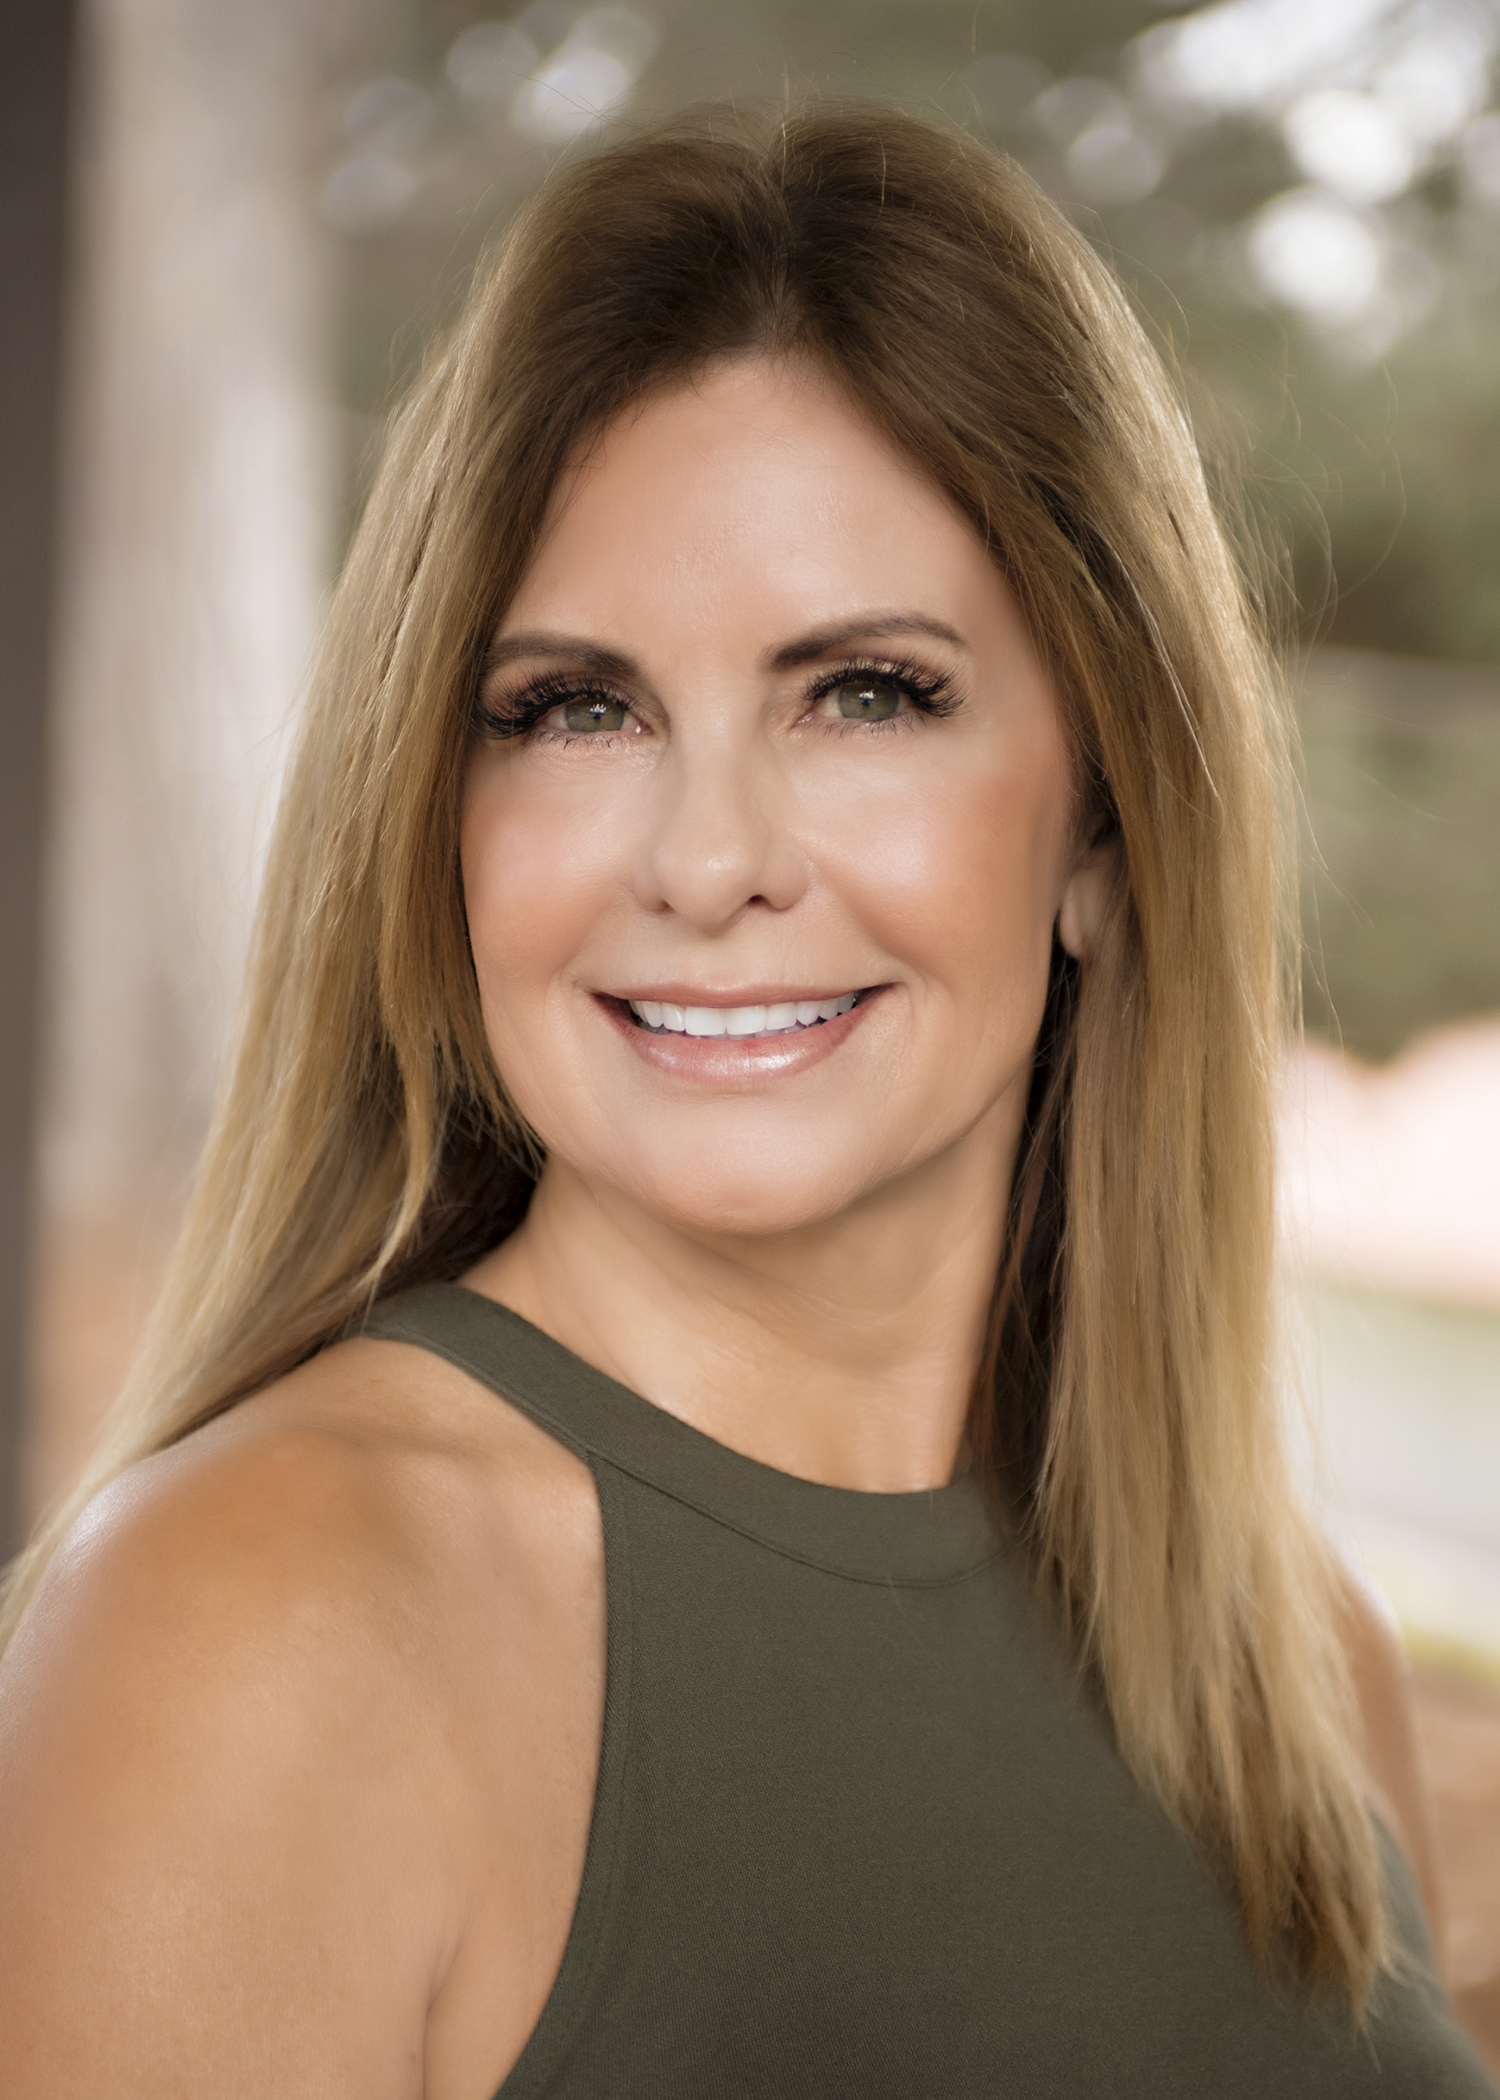 - Stacey was born in Beverly Hills and raised in Solana Beach and was in the first graduating class of Torrey Pines High School, where she was crowned Homecoming Queen. She has raised her two girls locally and has been involved with fundraising efforts for Santa Fe Christian School and other organizations.A natural real estate mindset has led her to acquiring multiple properties that she manages here in San Diego. She works in management for both The Limited fashion chain and Nordstroms for 8 years each. Prior to residential real estate, she worked at Lawrence Welk International Resorts representing Vacation Ownerships. Her insightful personality makes her highly aware of her clients needs and goes beyond the call of duty to create a transaction that brings happiness and satisfaction to all.Eight years ago she reconnected with a Torrey Pines High classmate, local businessman Bobby Garcia, which led to their wedding a few years ago, and they merged their two sons, two daughters, cats and dogs into a happy family.